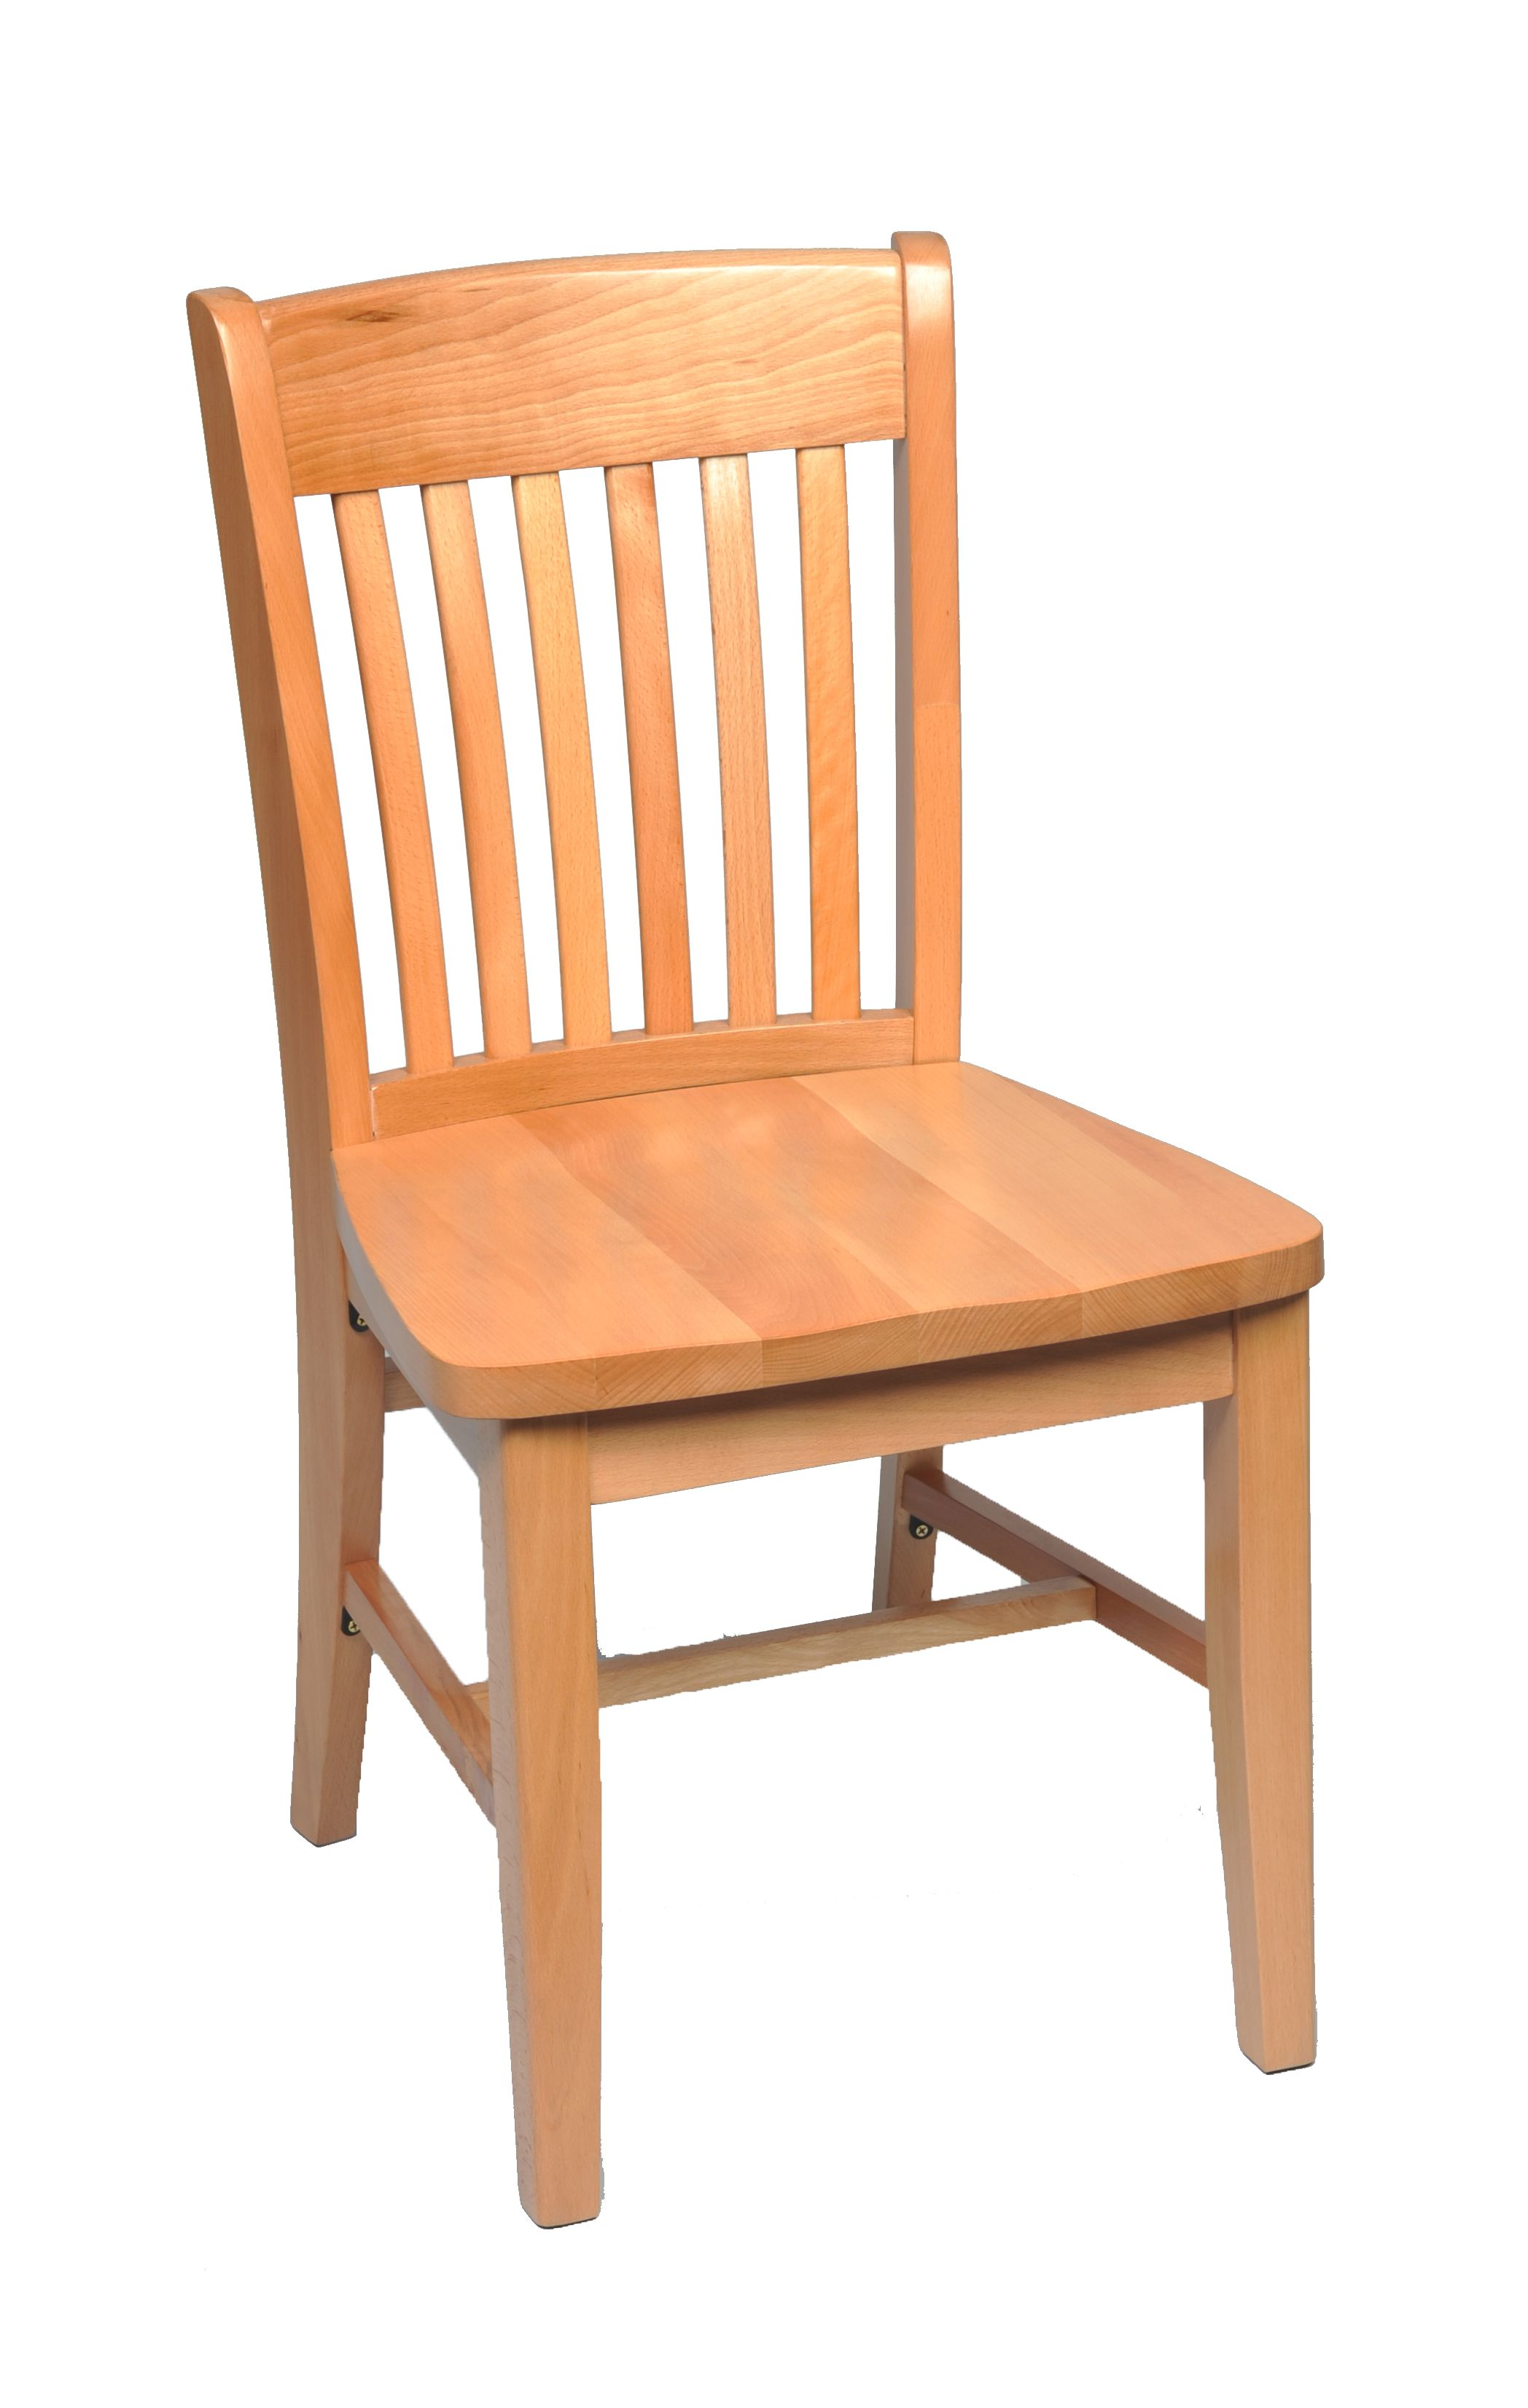 Solid wood dining chair schoolhouse solid wood dining chair am145477 thumbjpg furniture - Wooden dining room chairs ...